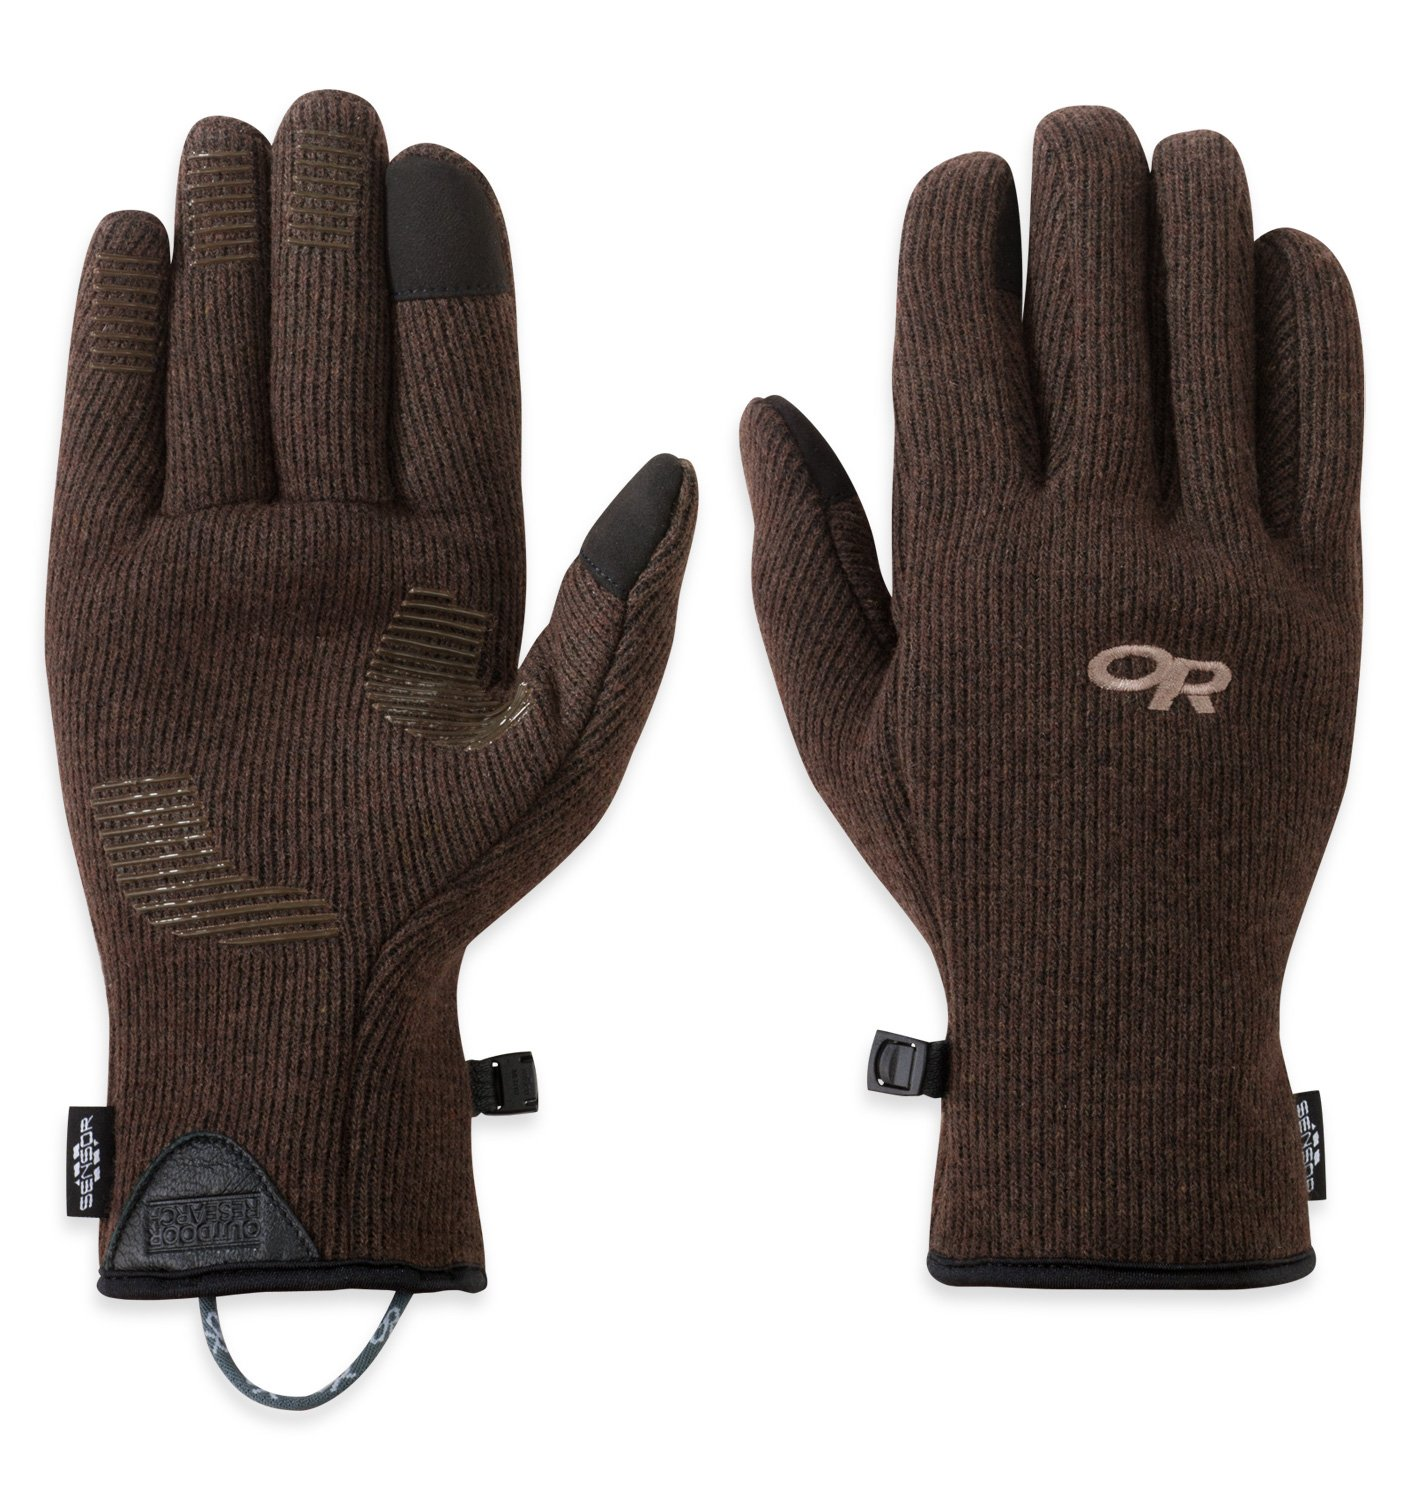 Outdoor Research Men's Flurry Sensor Gloves 244887